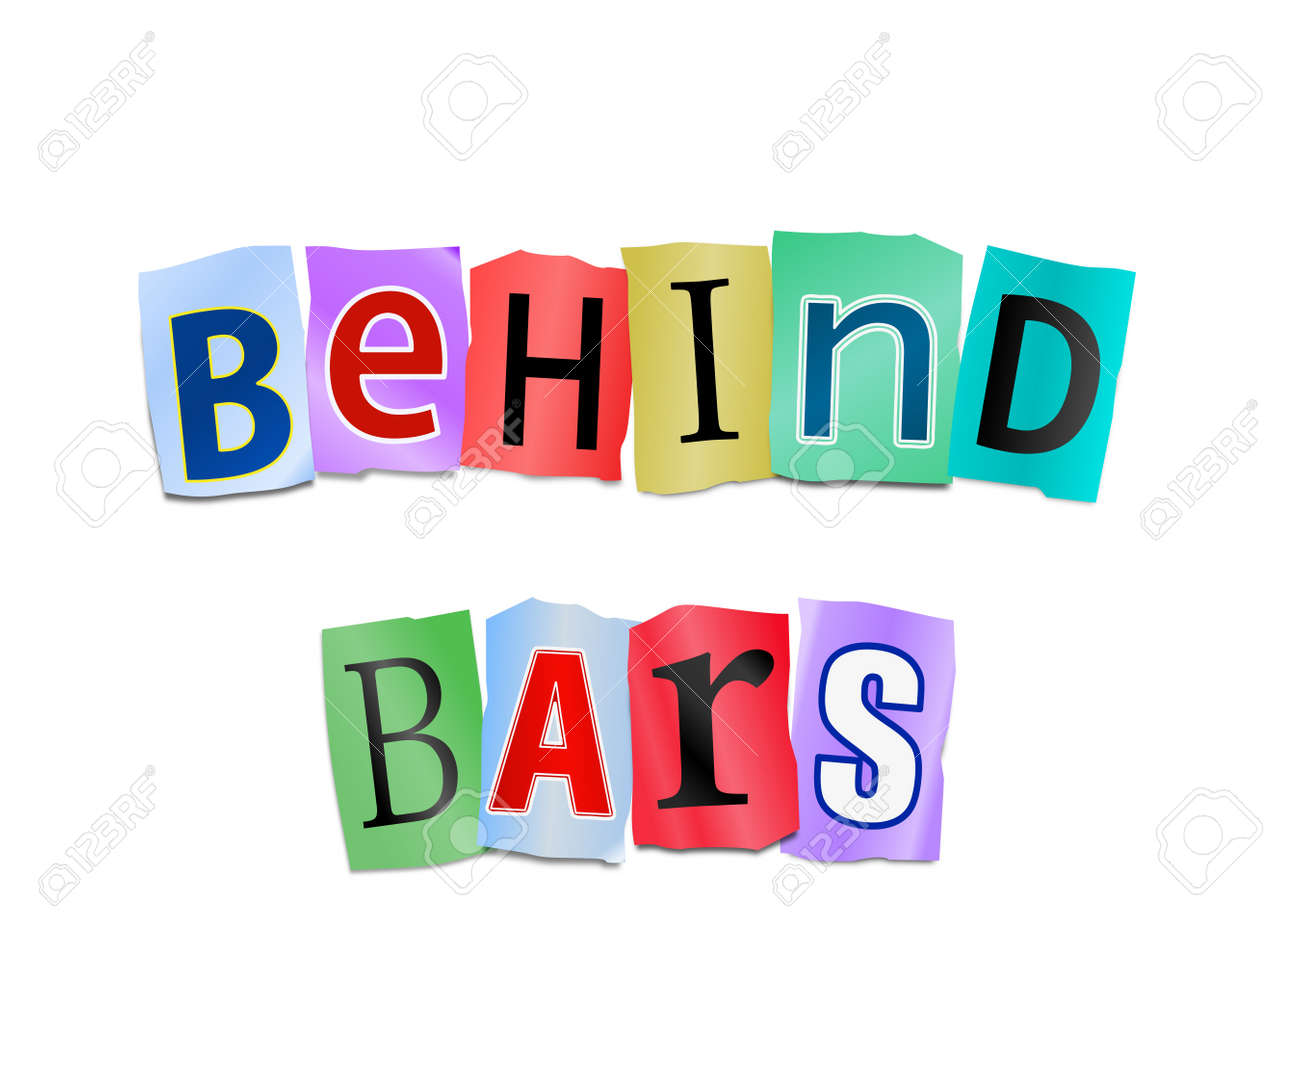 Illustration depicting cutout printed letters arranged to form the words behind bars Stock Photo - 18003871